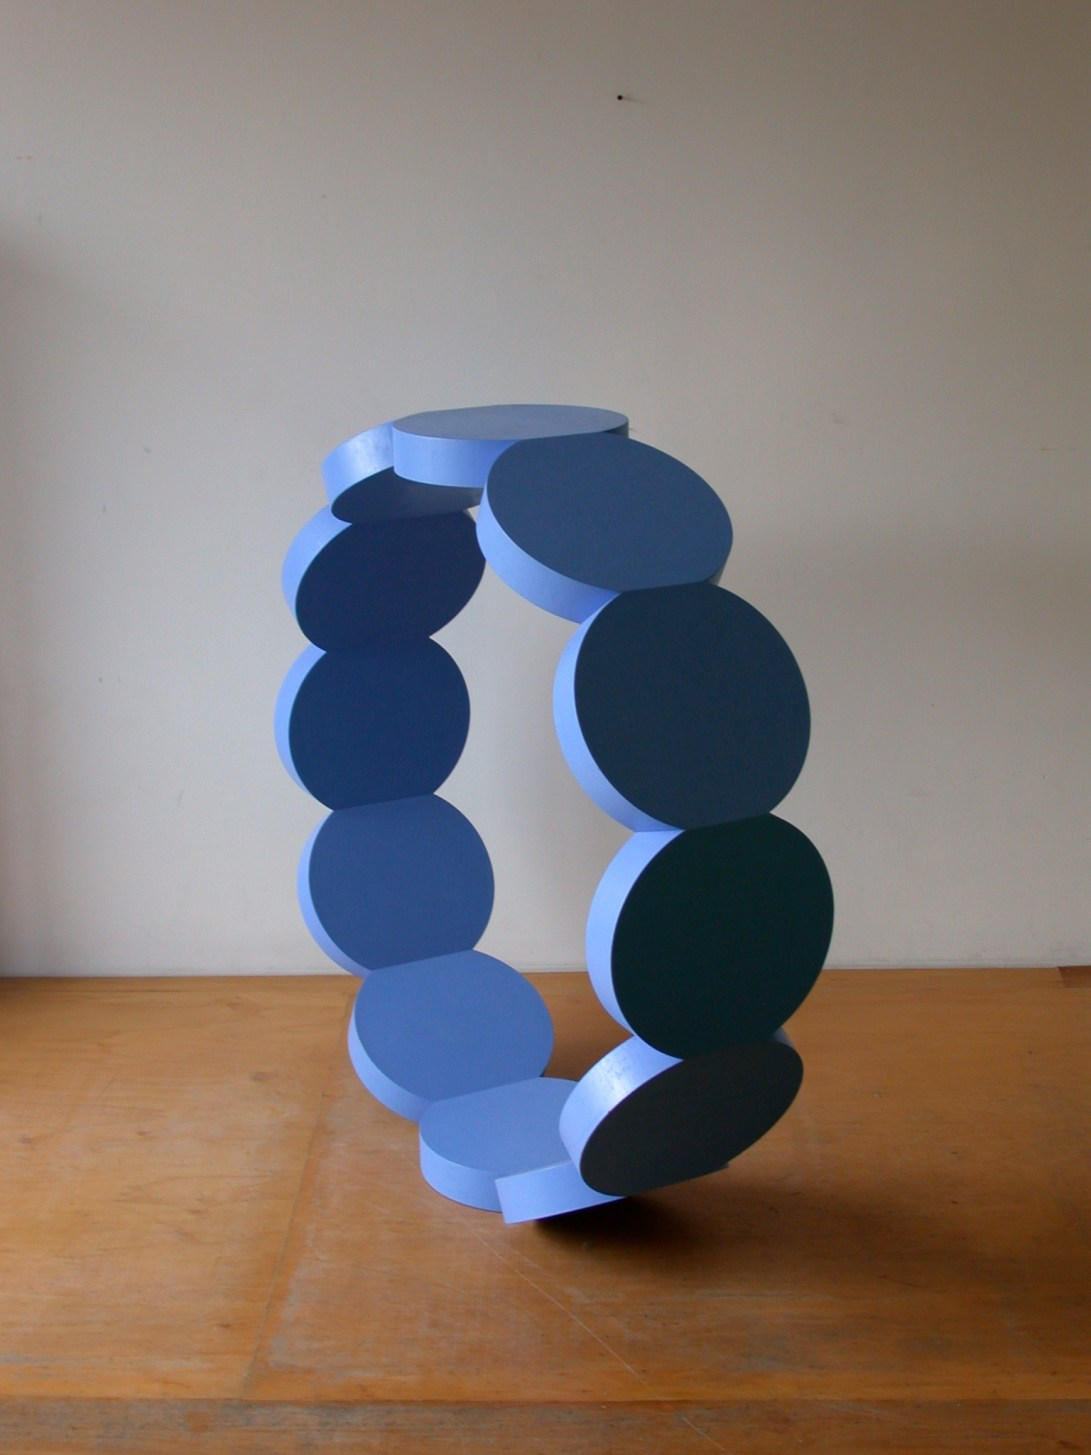 Sculpture 5, Untitled blue ring